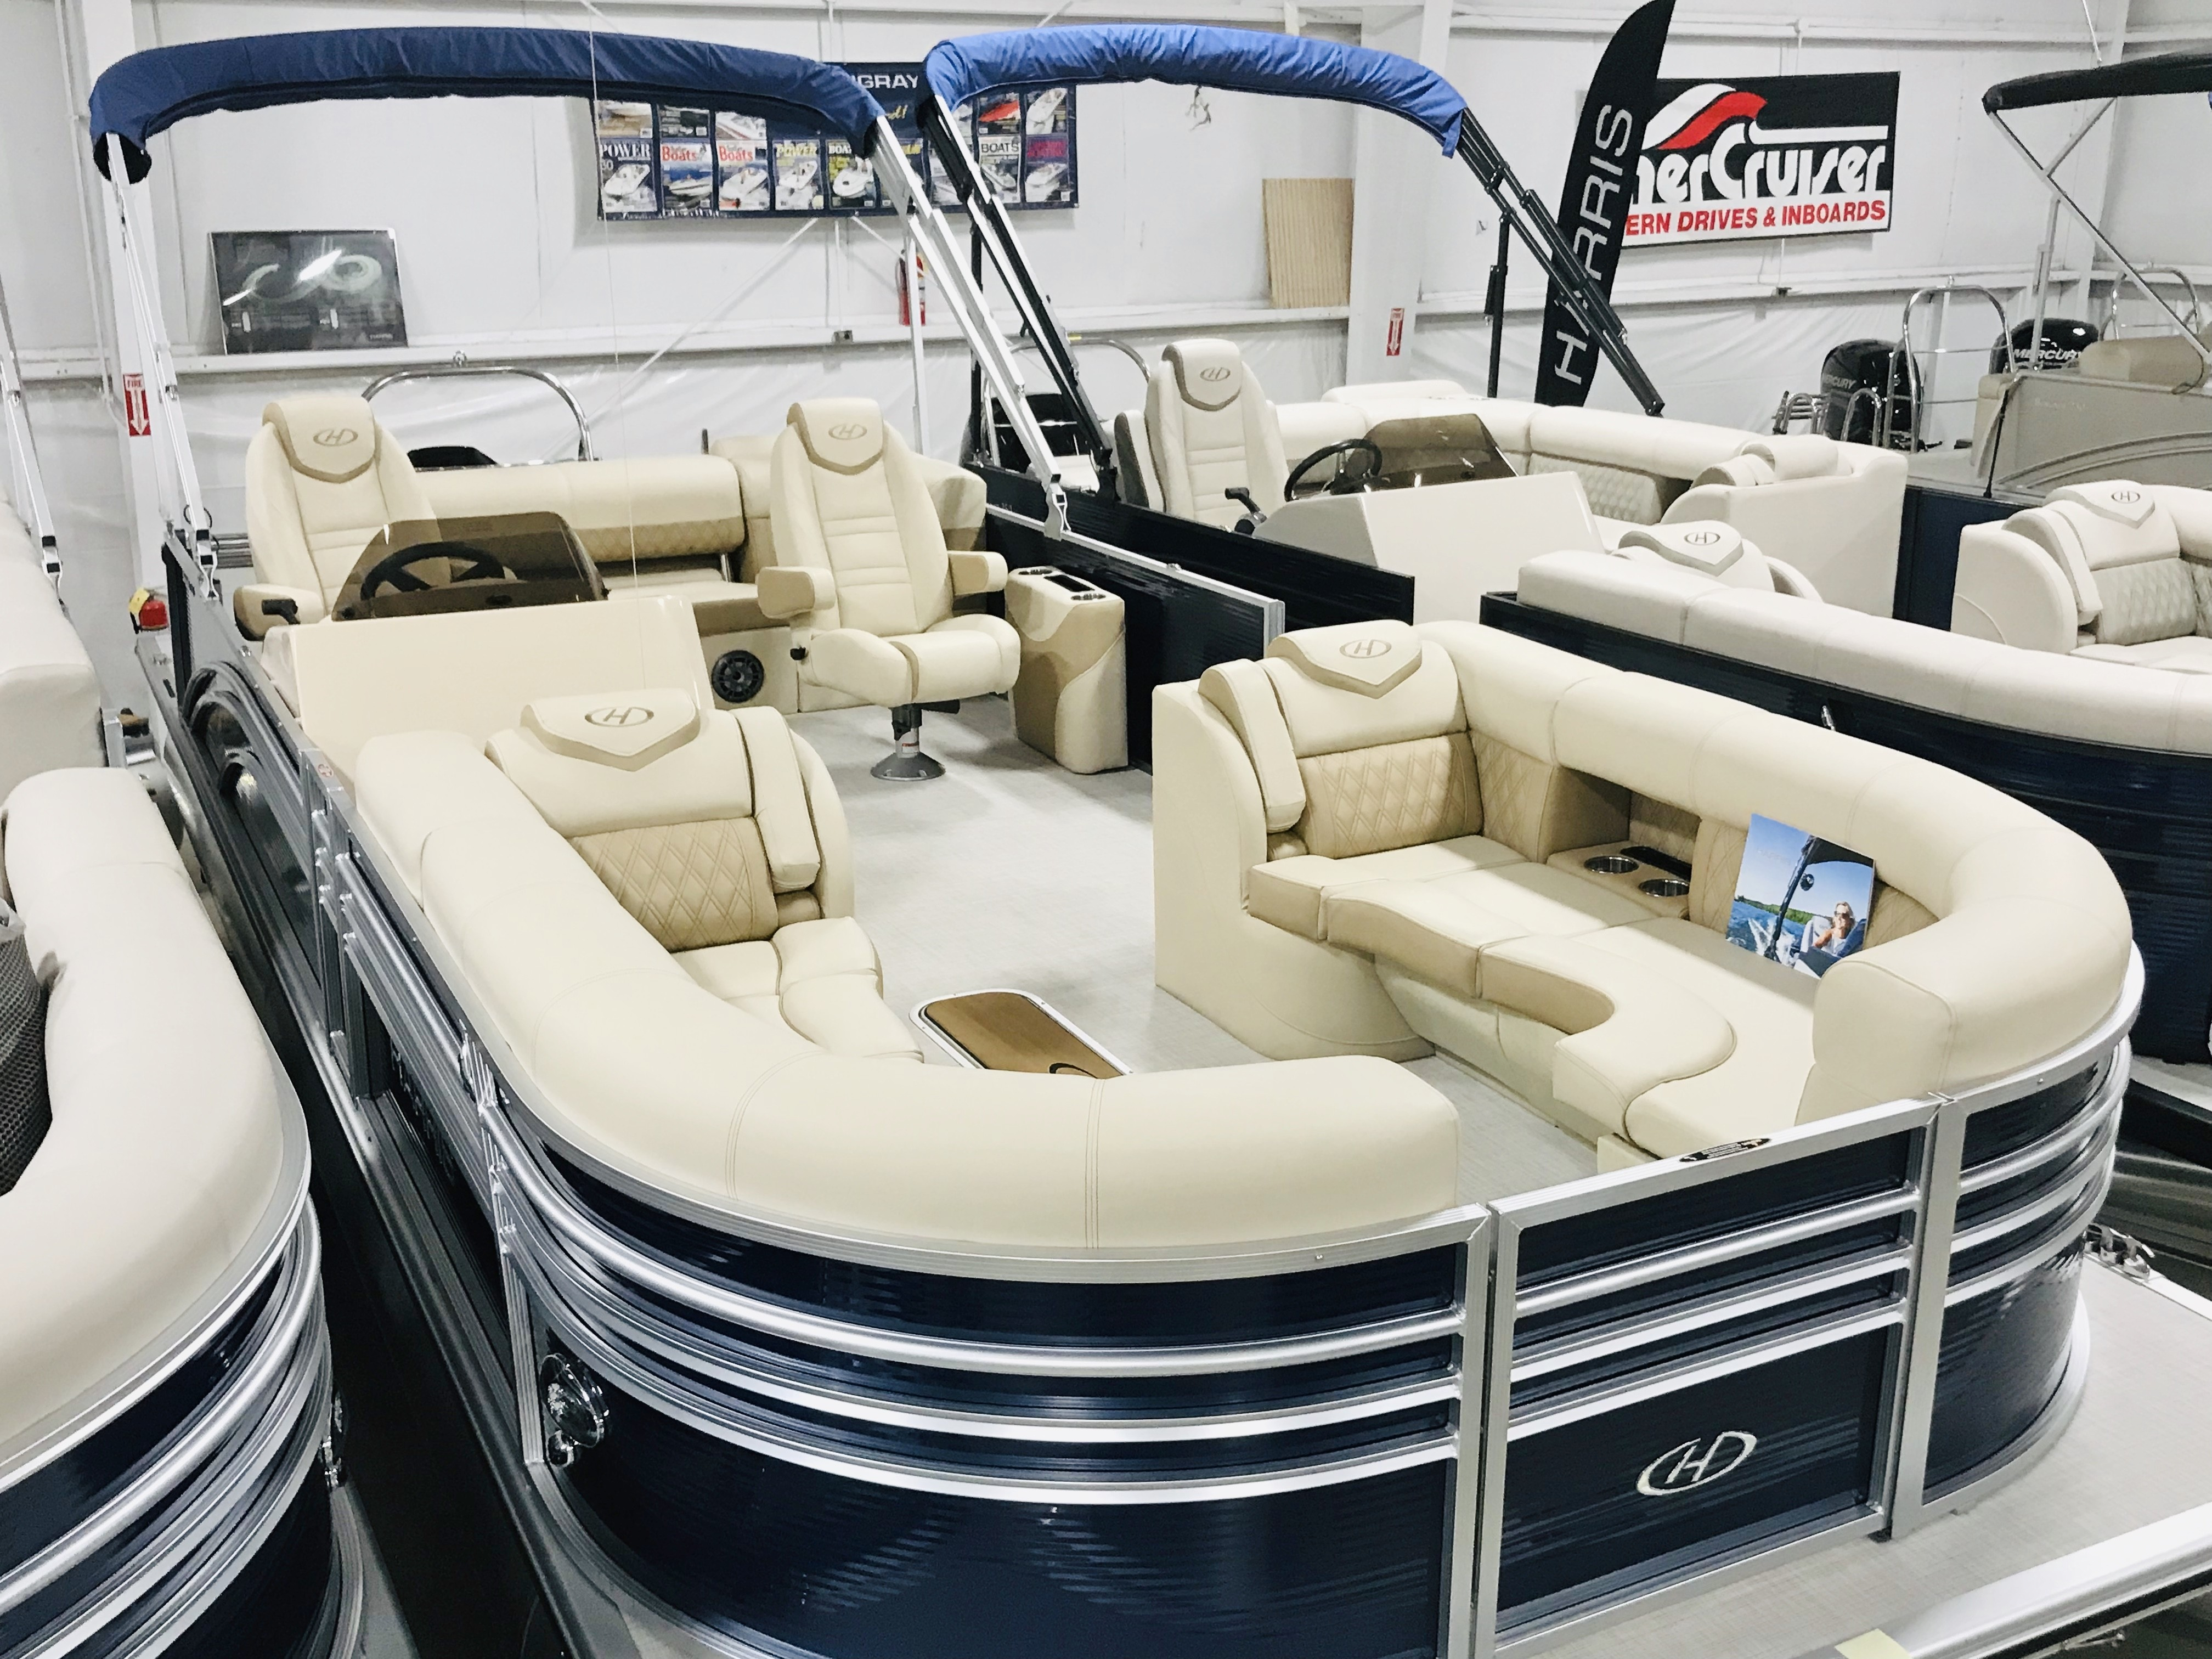 New, 2020, Harris Flotebote, SUNLINER 250 SLDH 200 Hp w/Trailer, Boats